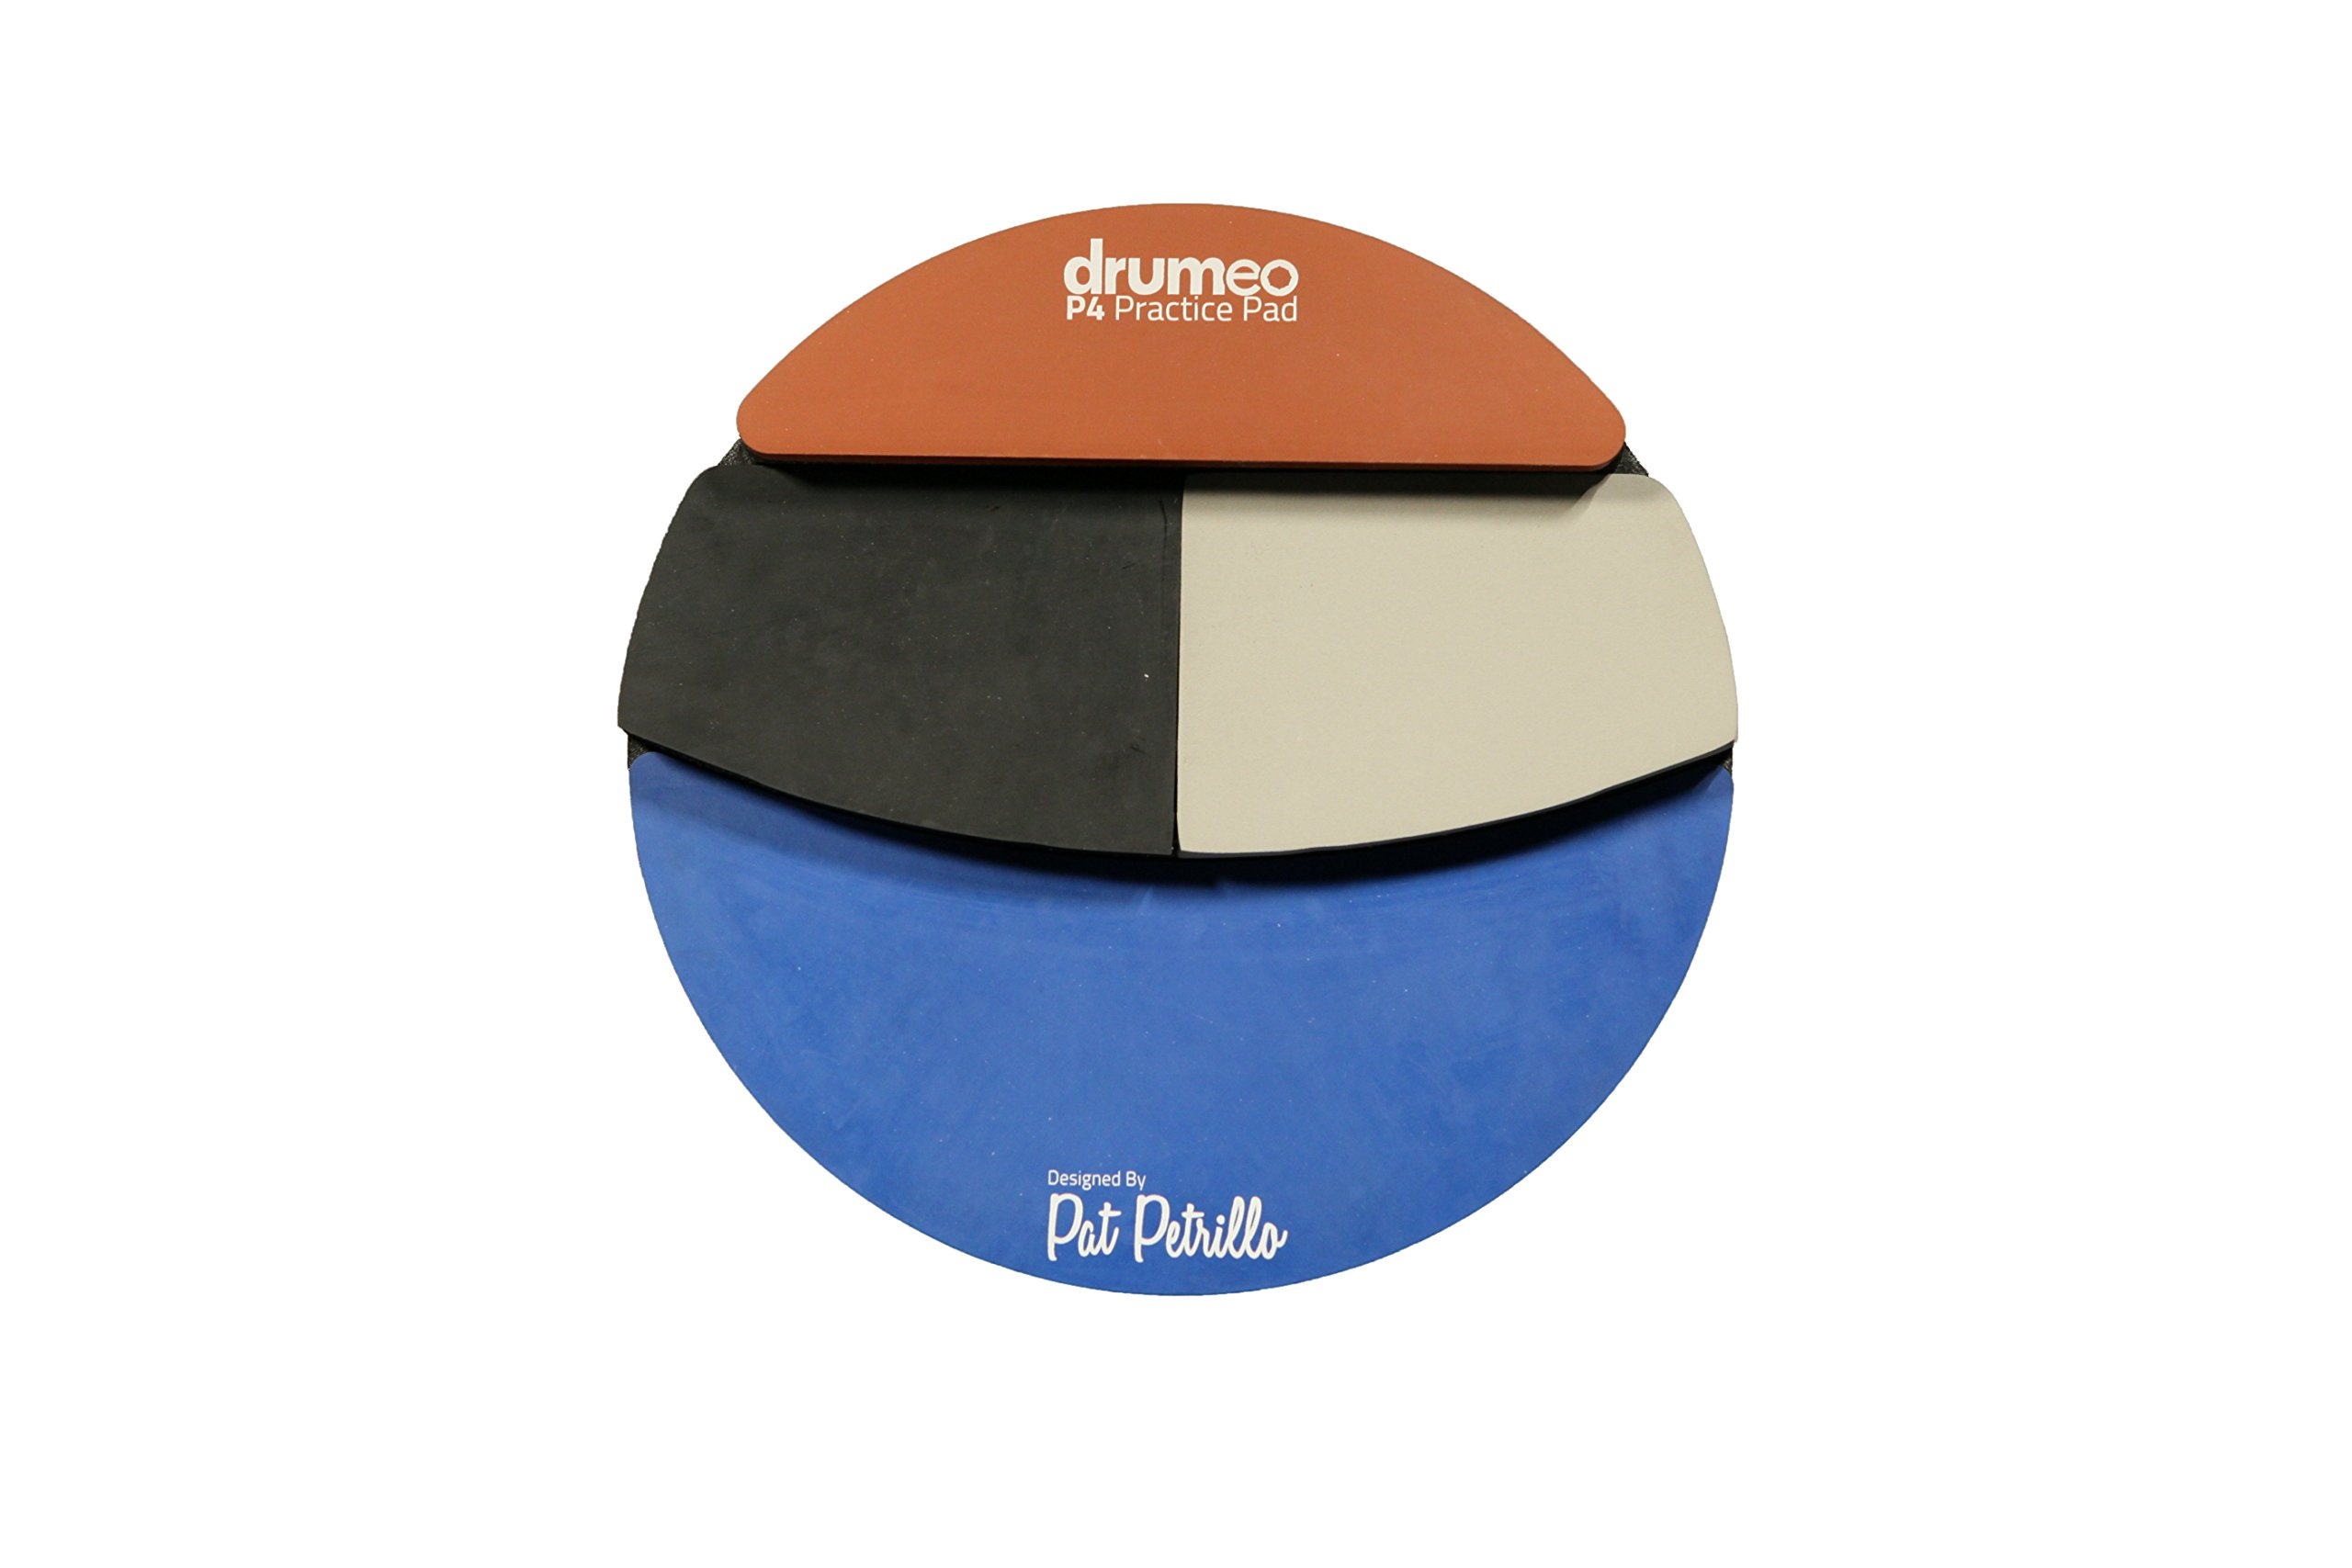 The Drumeo P4 Practice Pad - Four Different Playing Surfaces by Drumeo